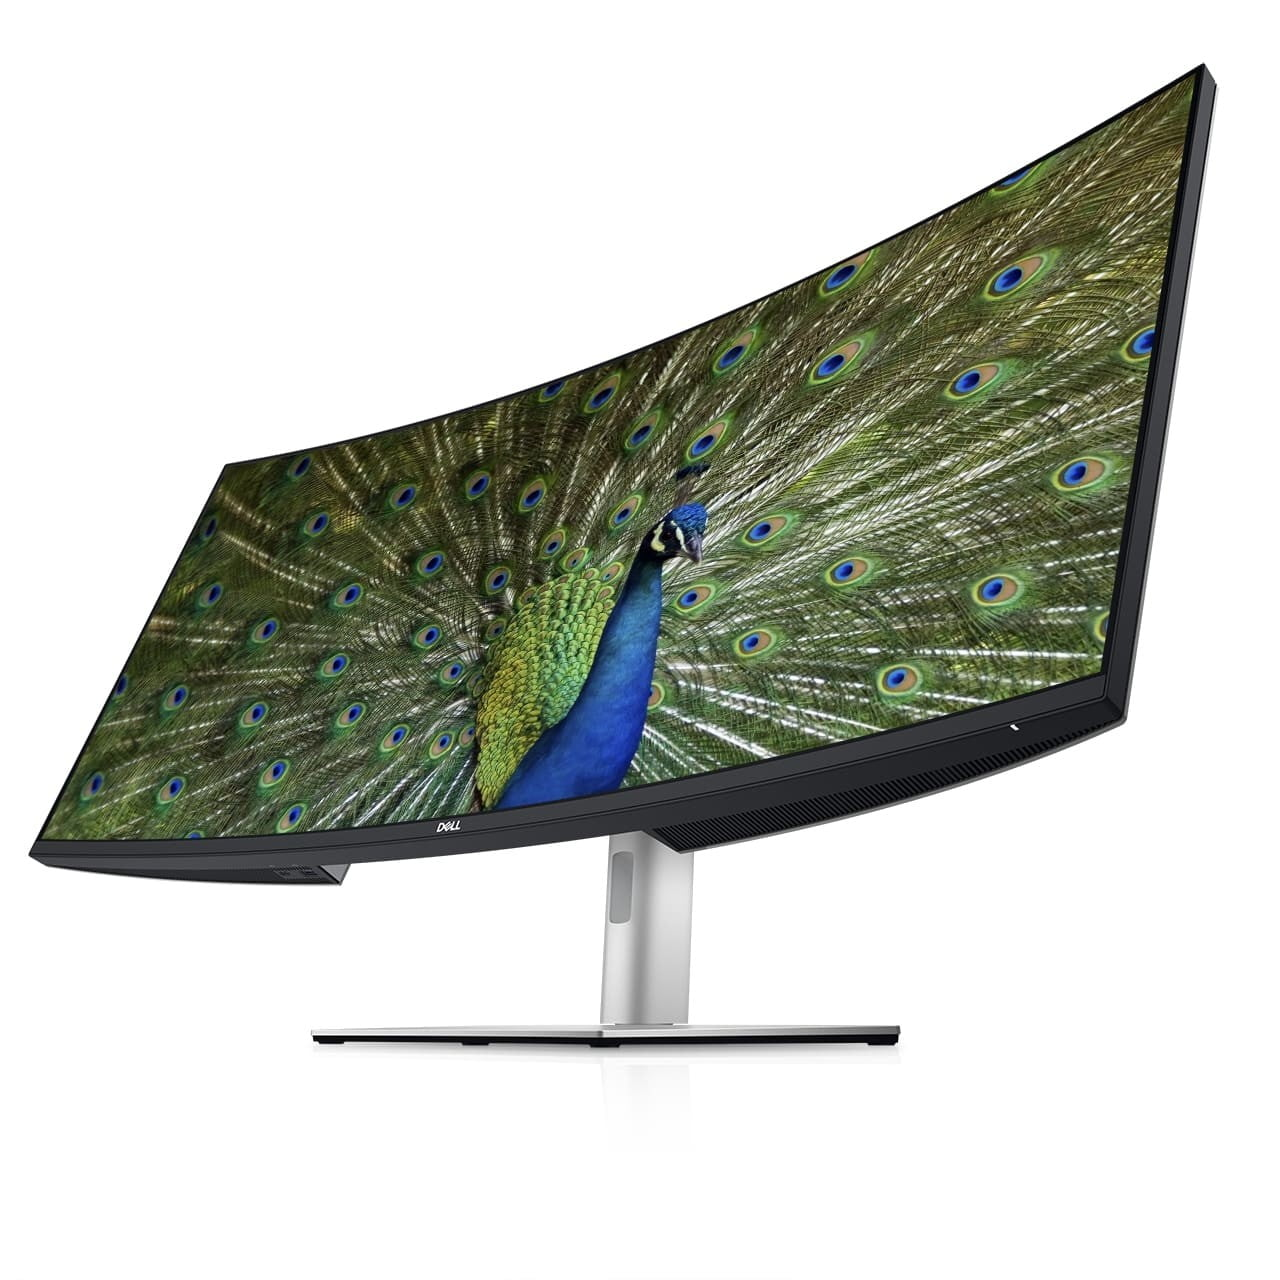 dell refreshes ultrasharp monitors ces 2021 40 curved monitor with speakers